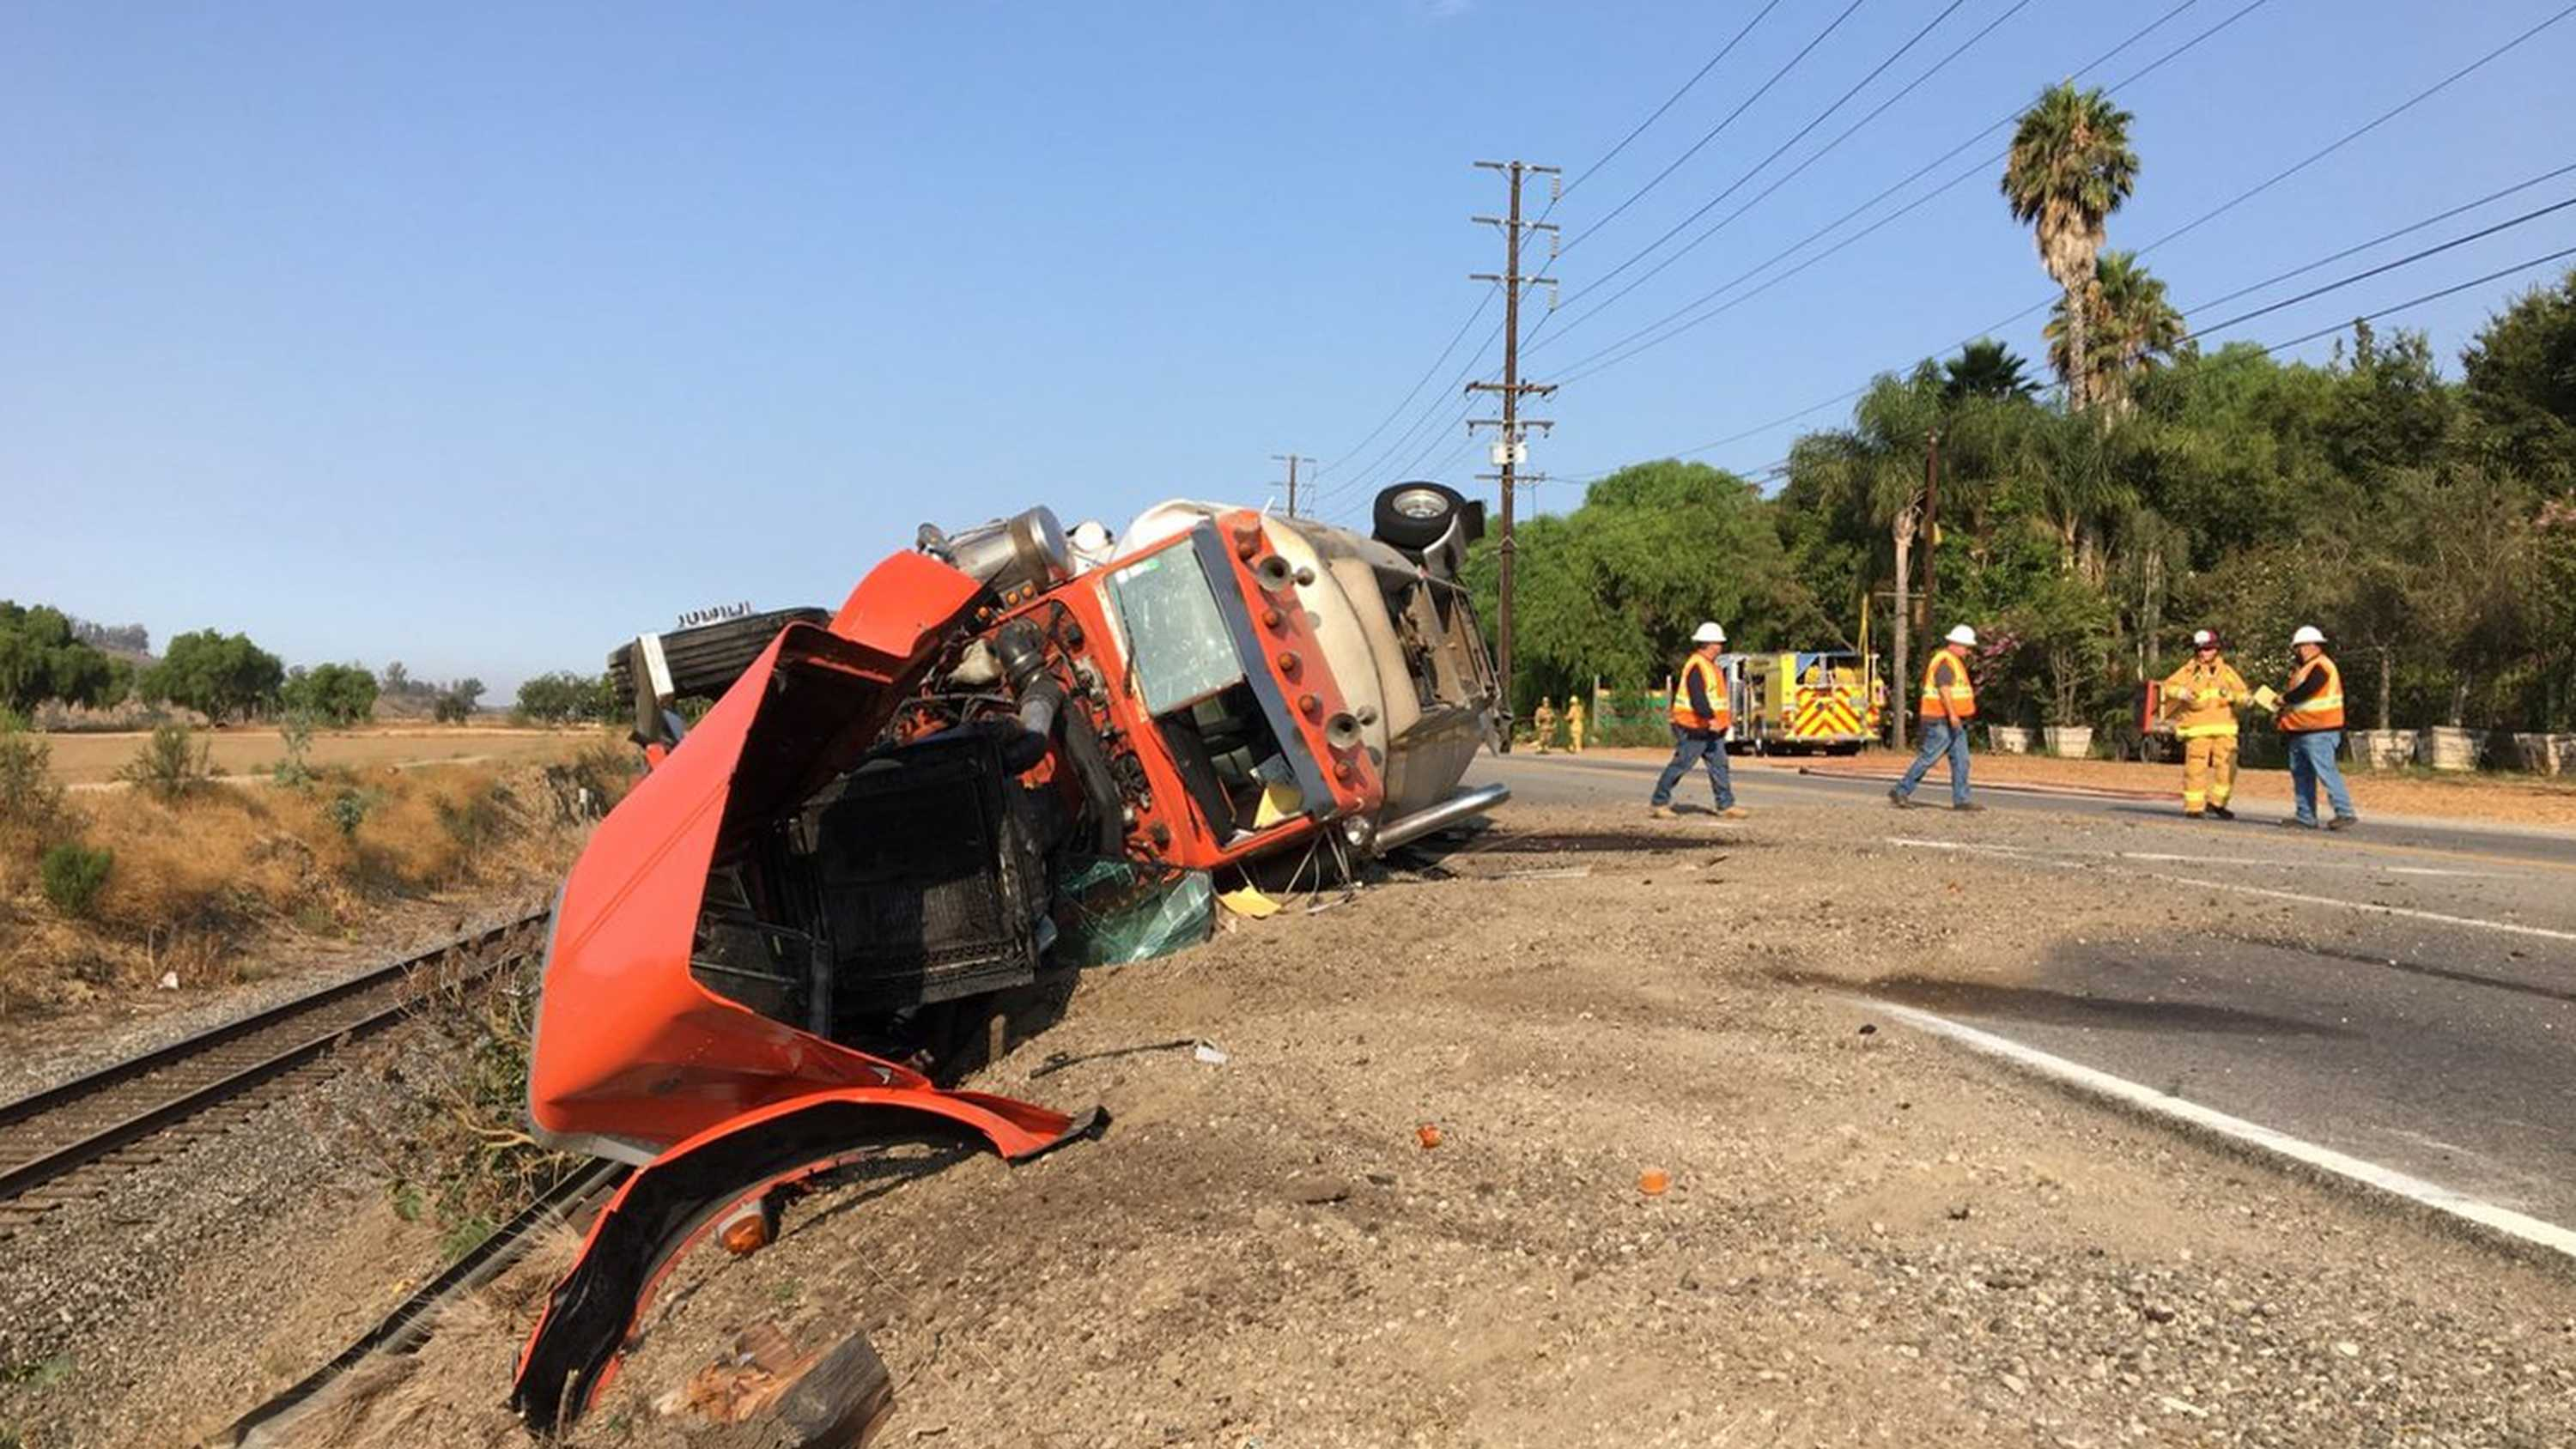 In this Friday, Aug. 9, 2018, photo released by the California Department of Transportation, shows Caltrans District 7, workers clean up a hazardous spill on SR-118 in Ventura County from an earlier accident this morning. The tanker truck hit a car carrying a woman and two children on a Ventura County highway, killing a 9-year-old boy and seriously injuring a 7-year-old girl and both drivers involved.